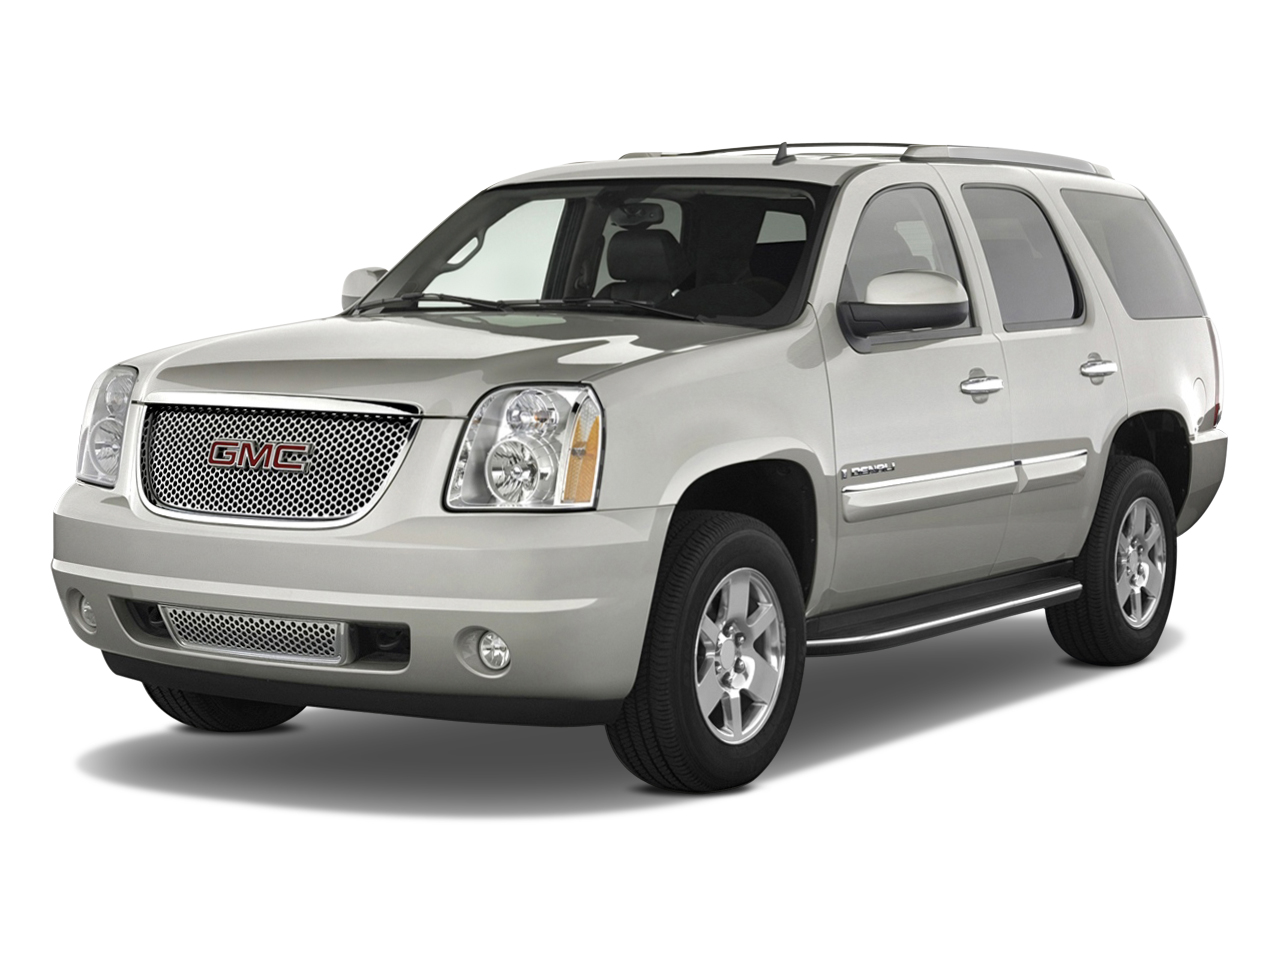 2019 GMC Yukon Denali photo - 4